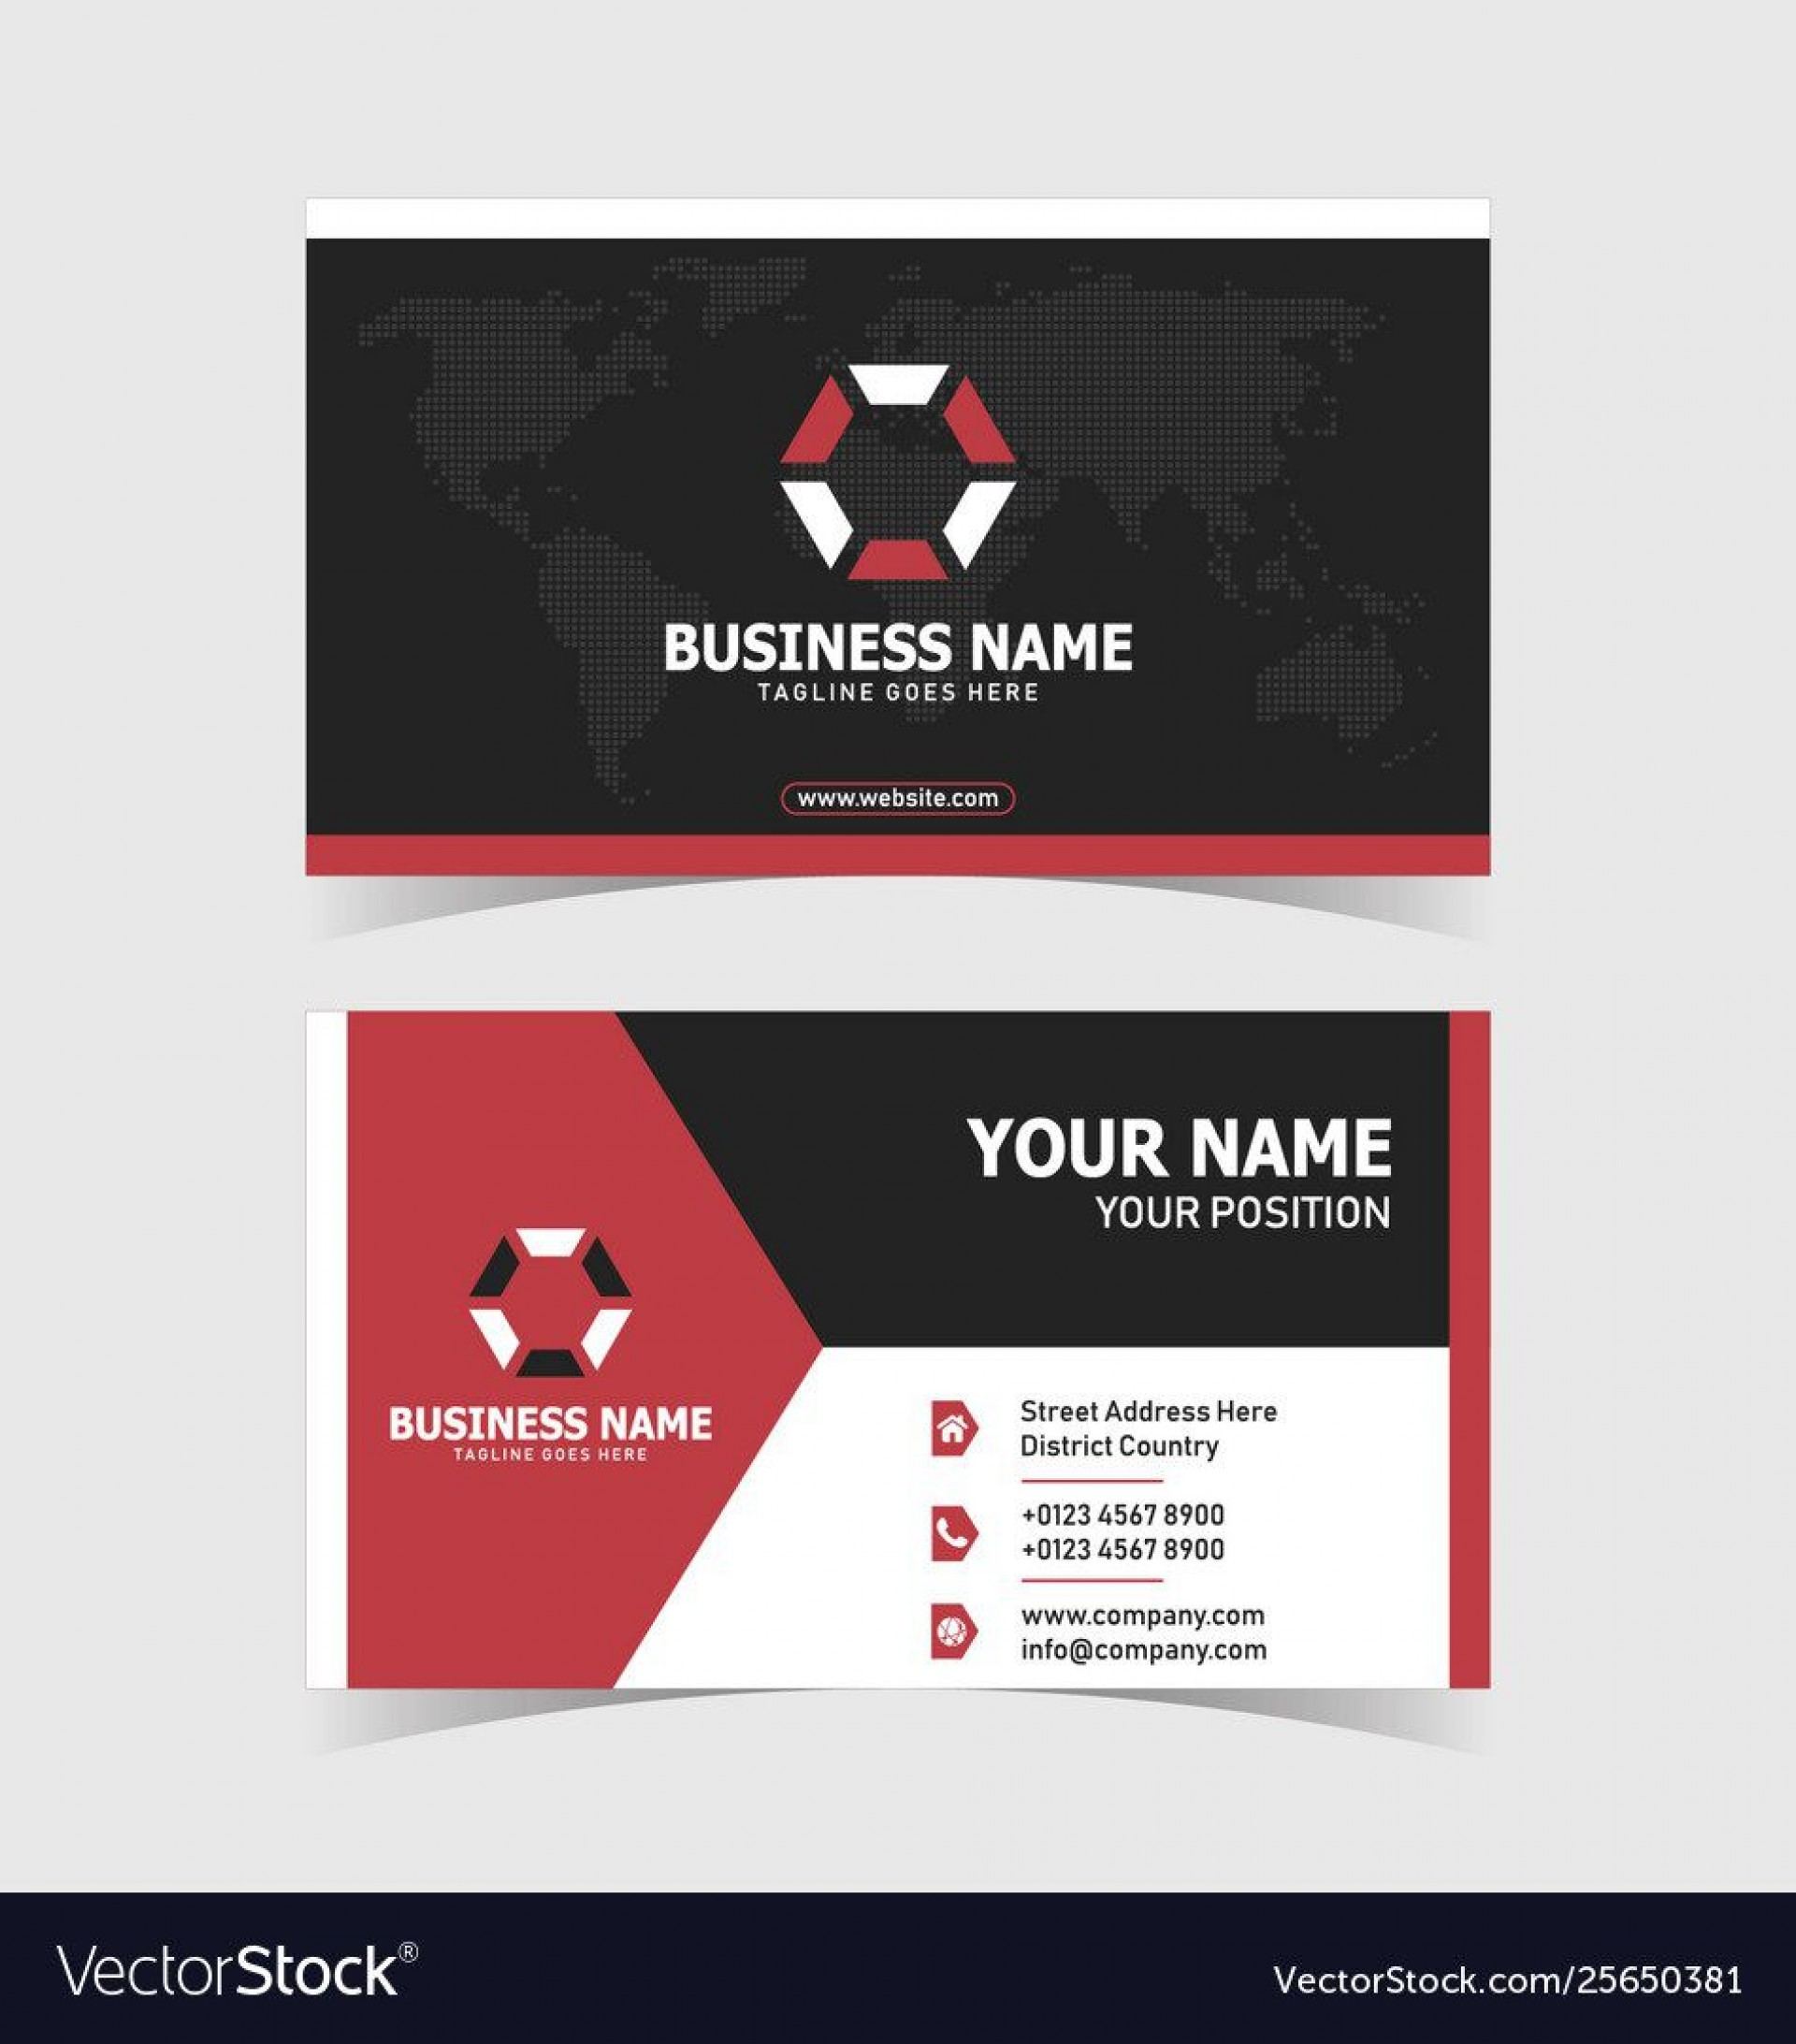 002 Unusual Double Sided Busines Card Template Inspiration  Templates Word Free Two Microsoft1920